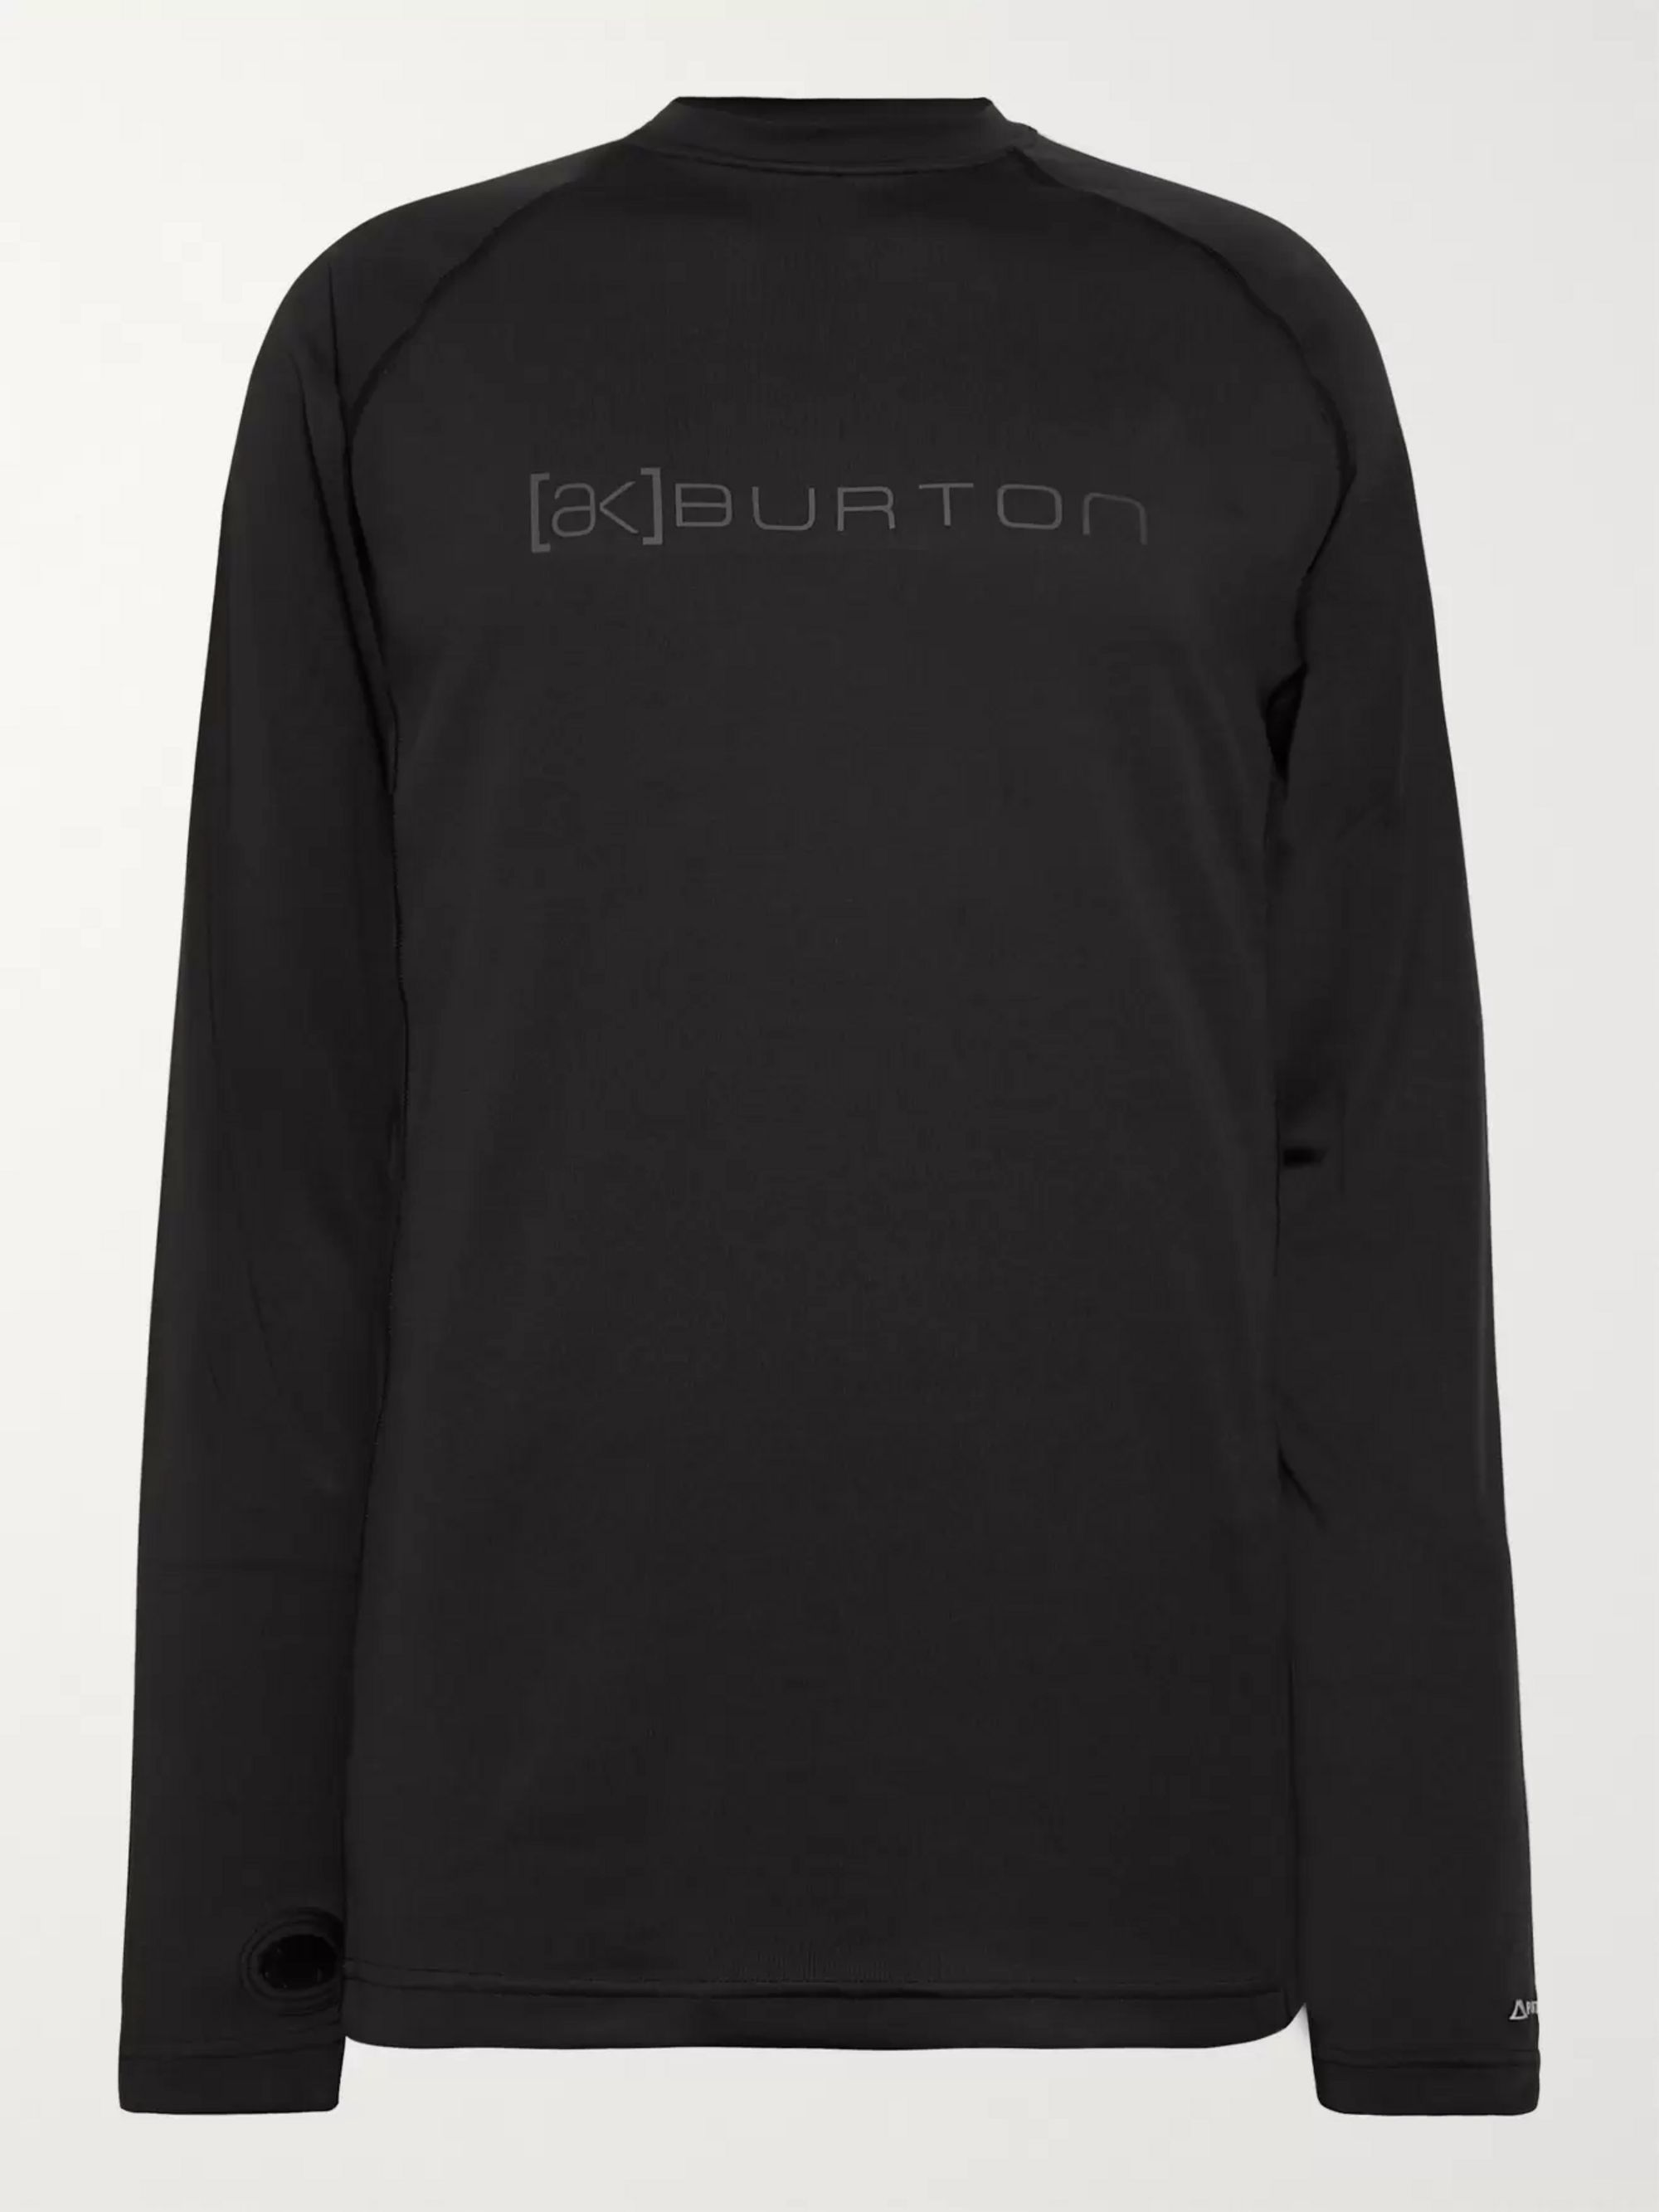 Burton [ak] Power Jersey Base Layer